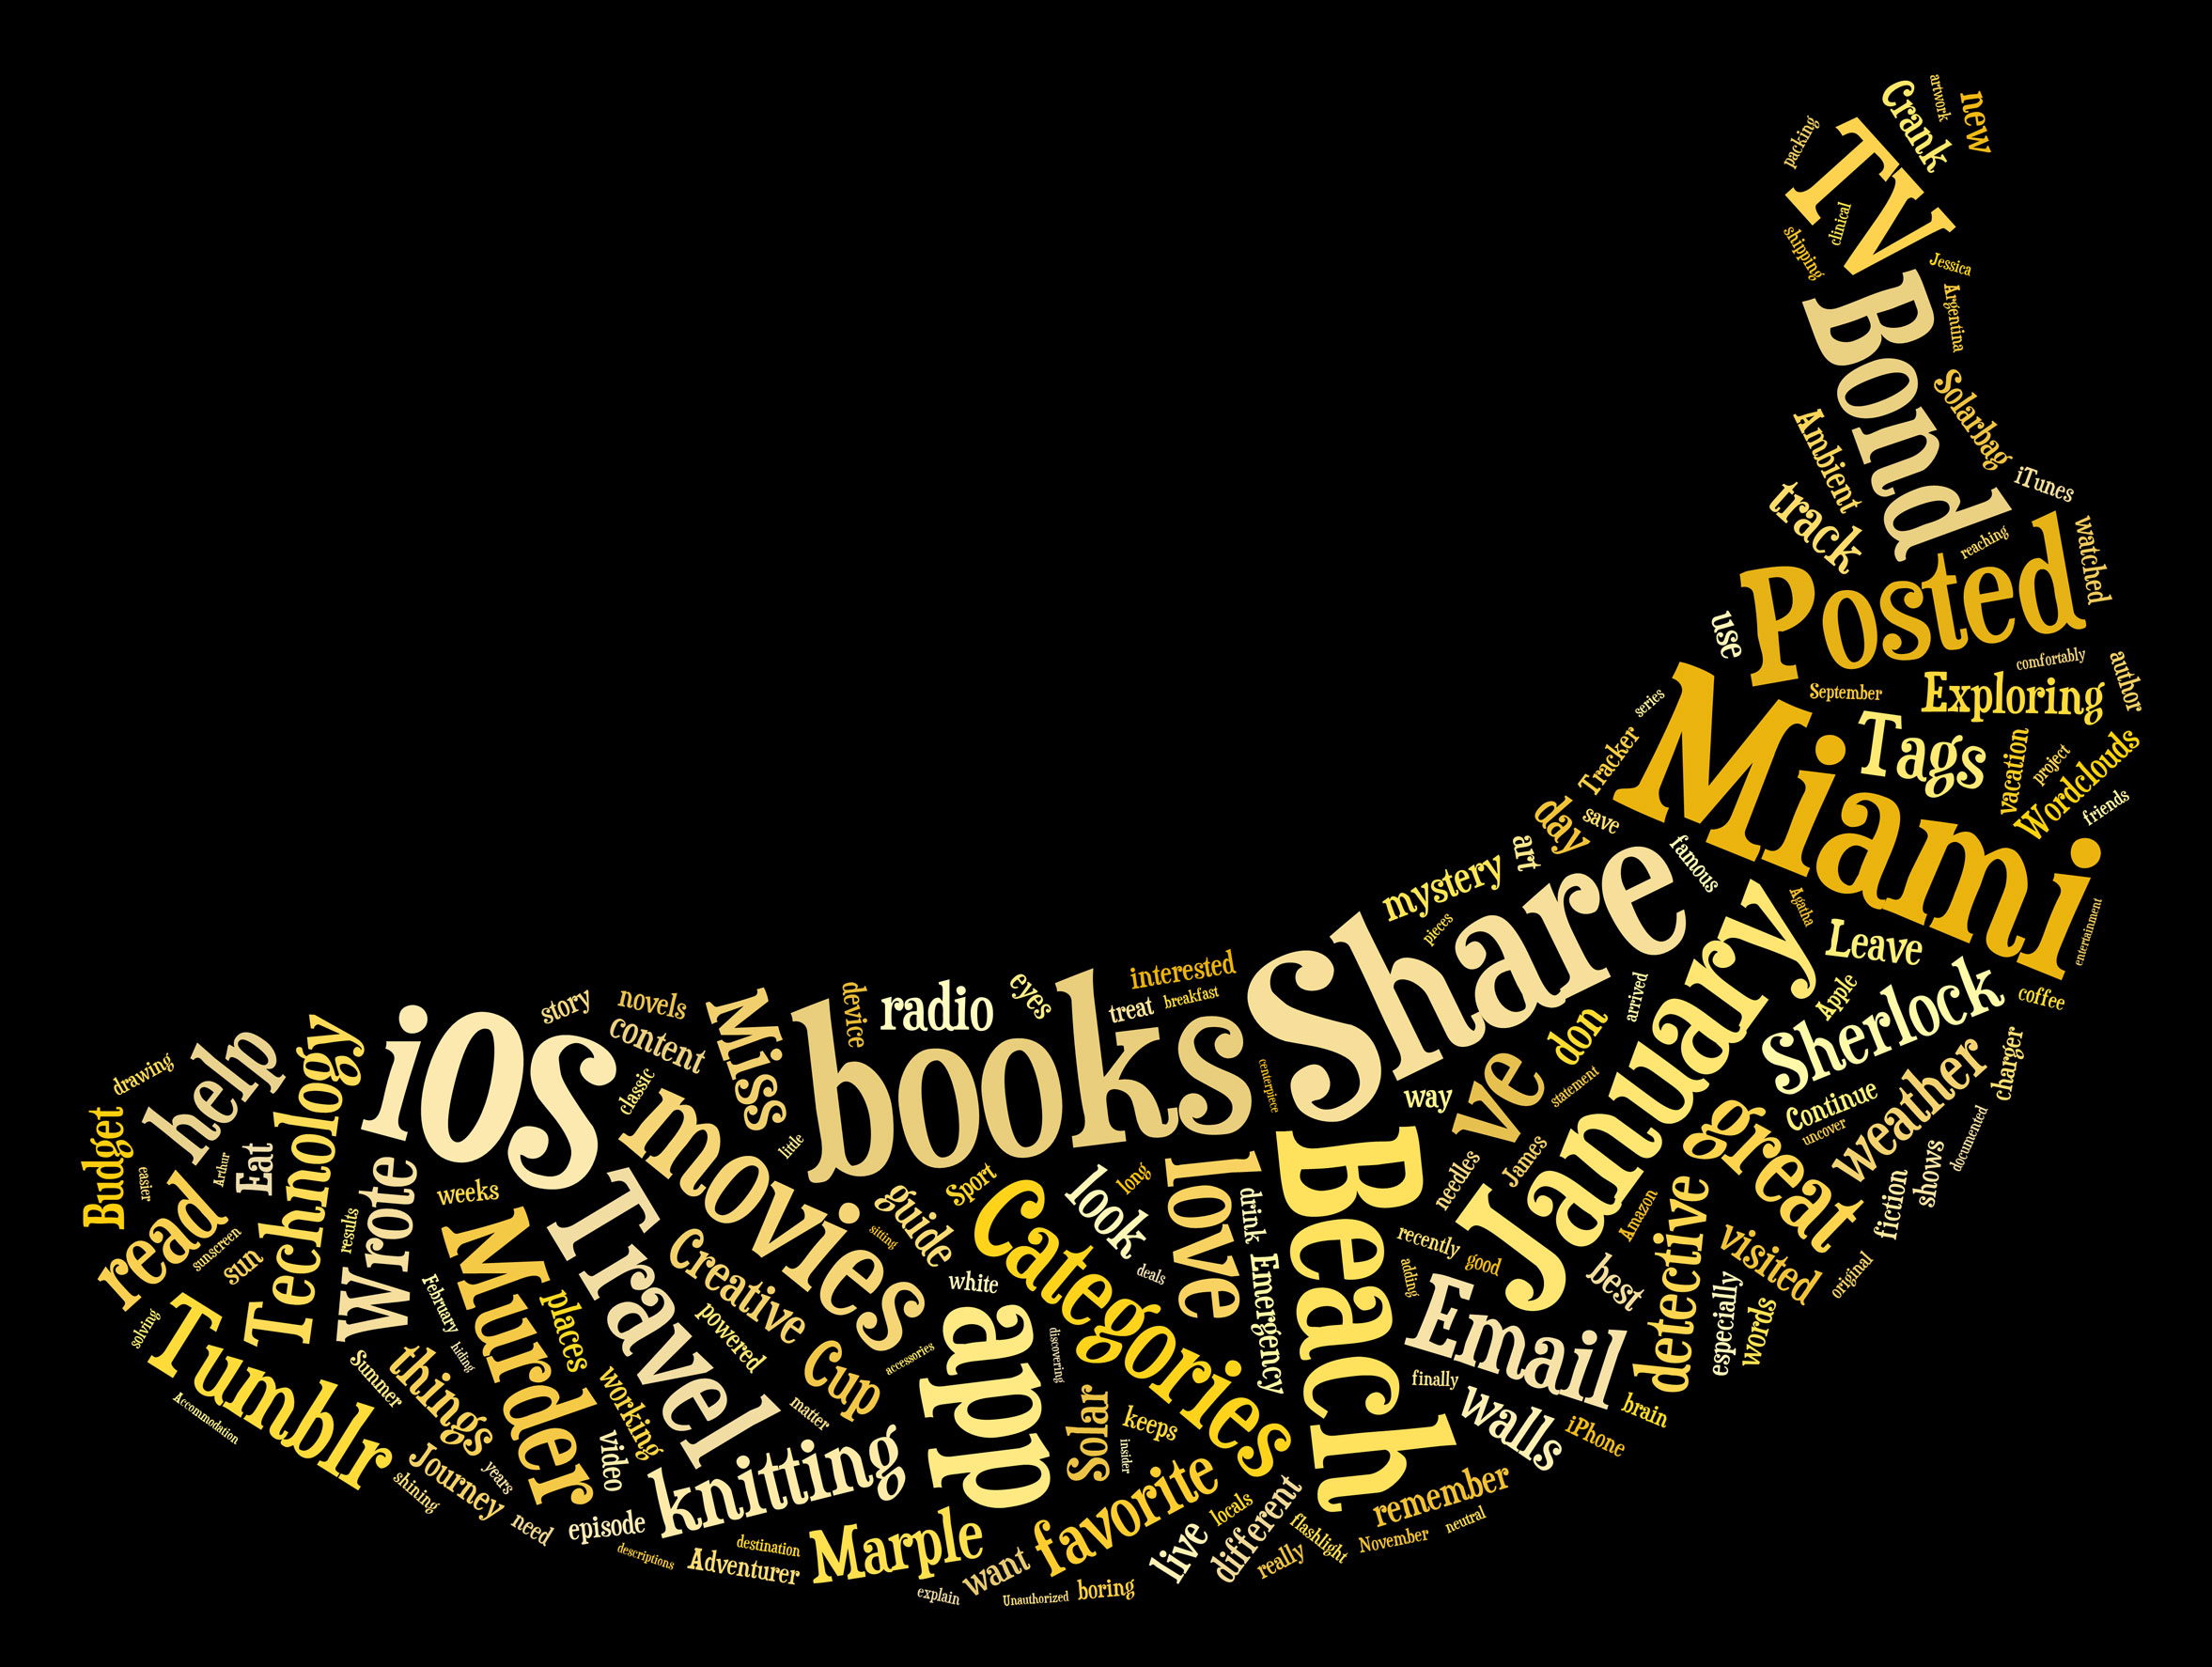 Banana-Word-Cloud-Jan-23